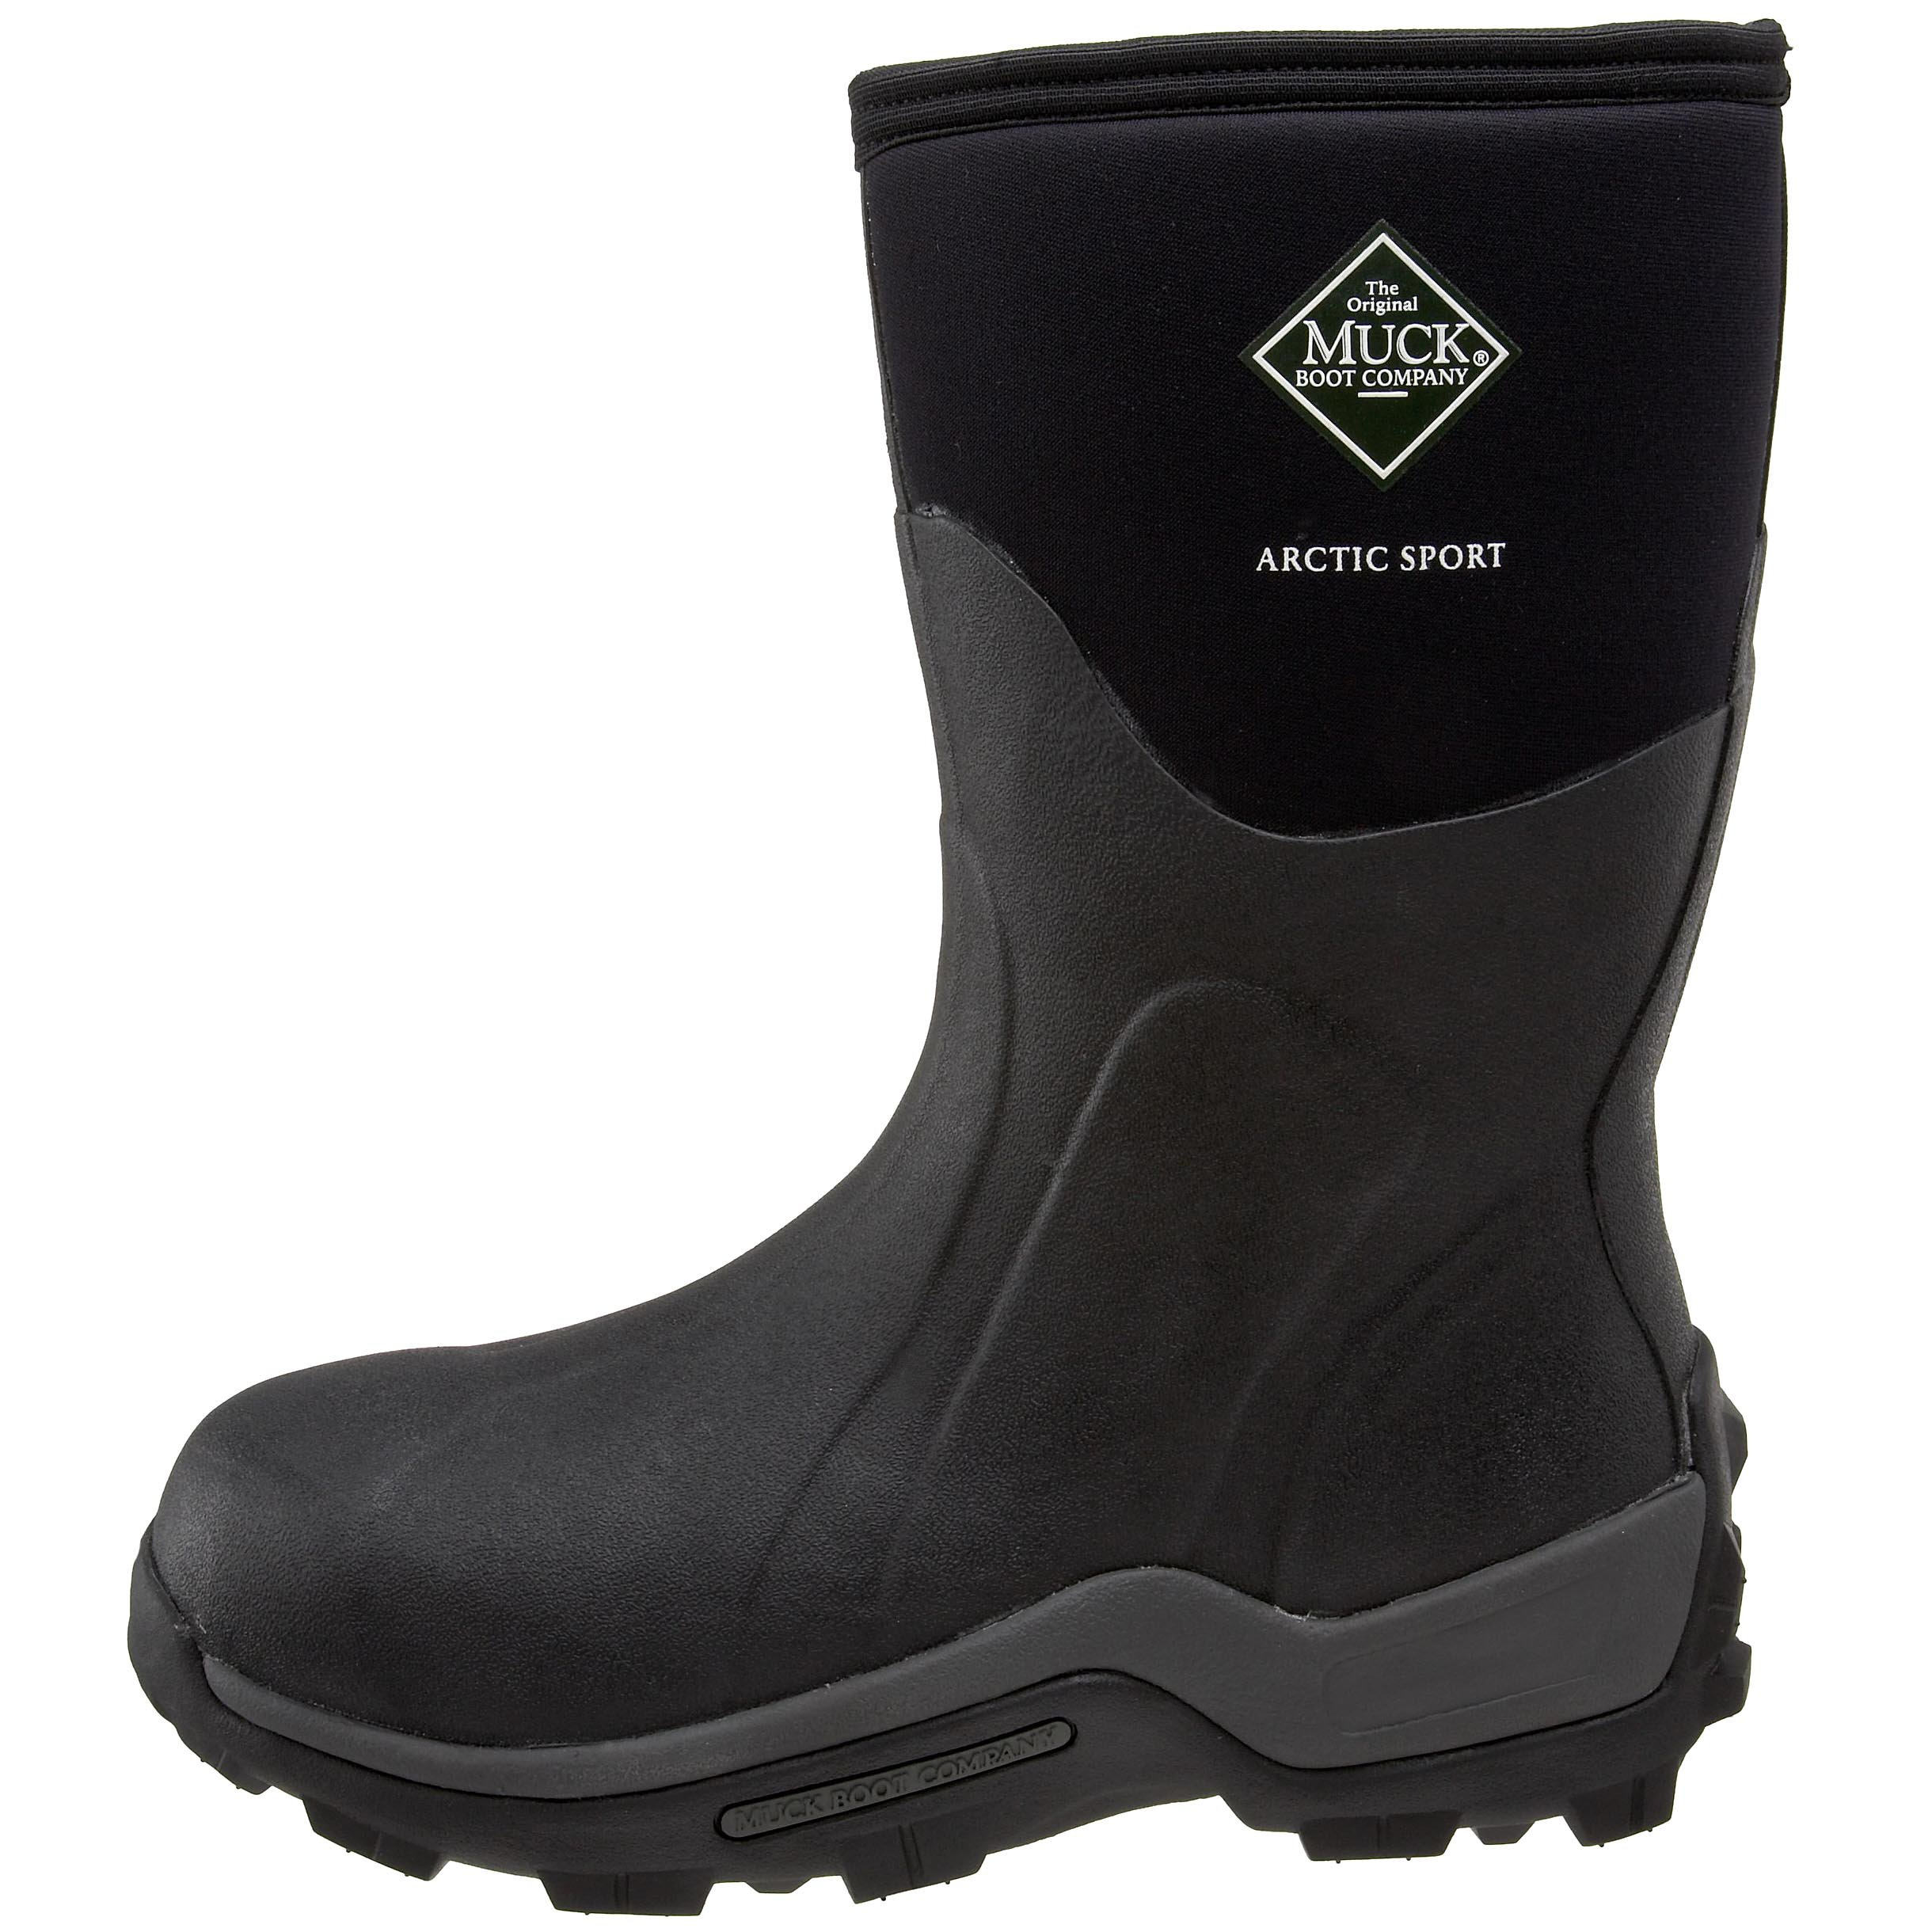 The Original MuckBoots Arctic Sport Mid Outdoor Boot,Black,12 M US Mens/13 M US Womens by Muck Boot (Image #5)